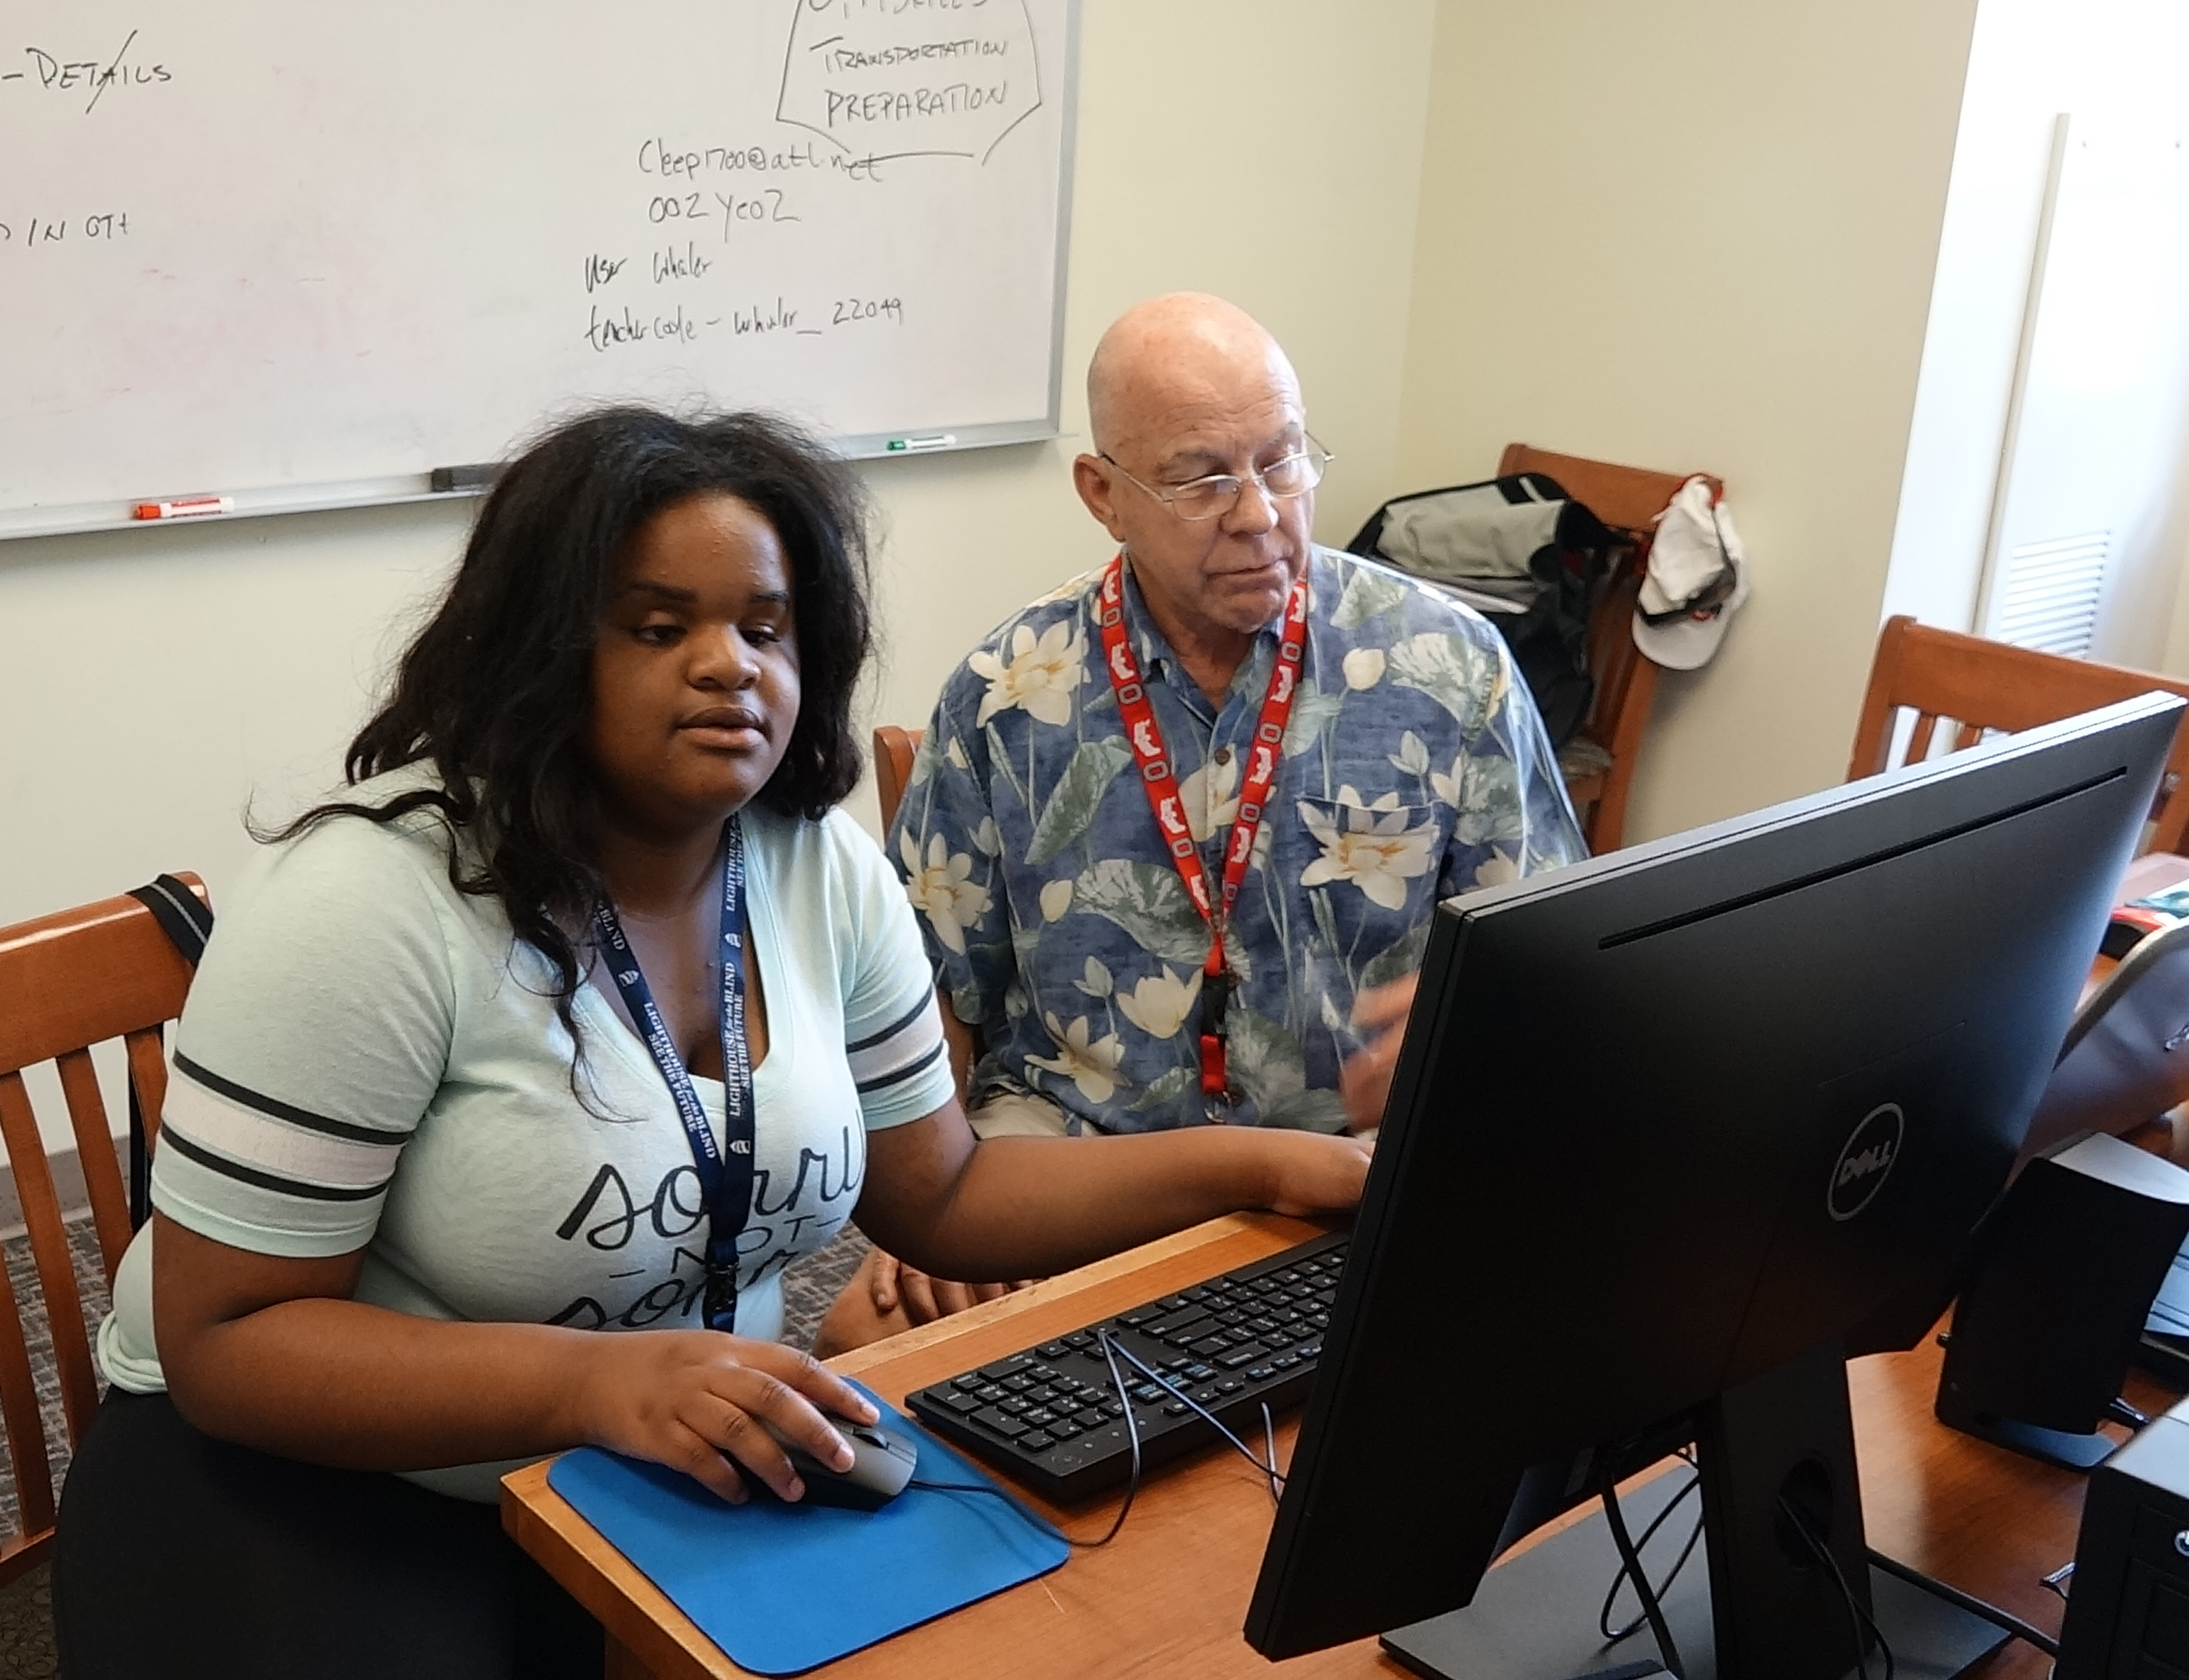 Ariana Receives Career Advice And Direction From Her Careers Domain Instructor.